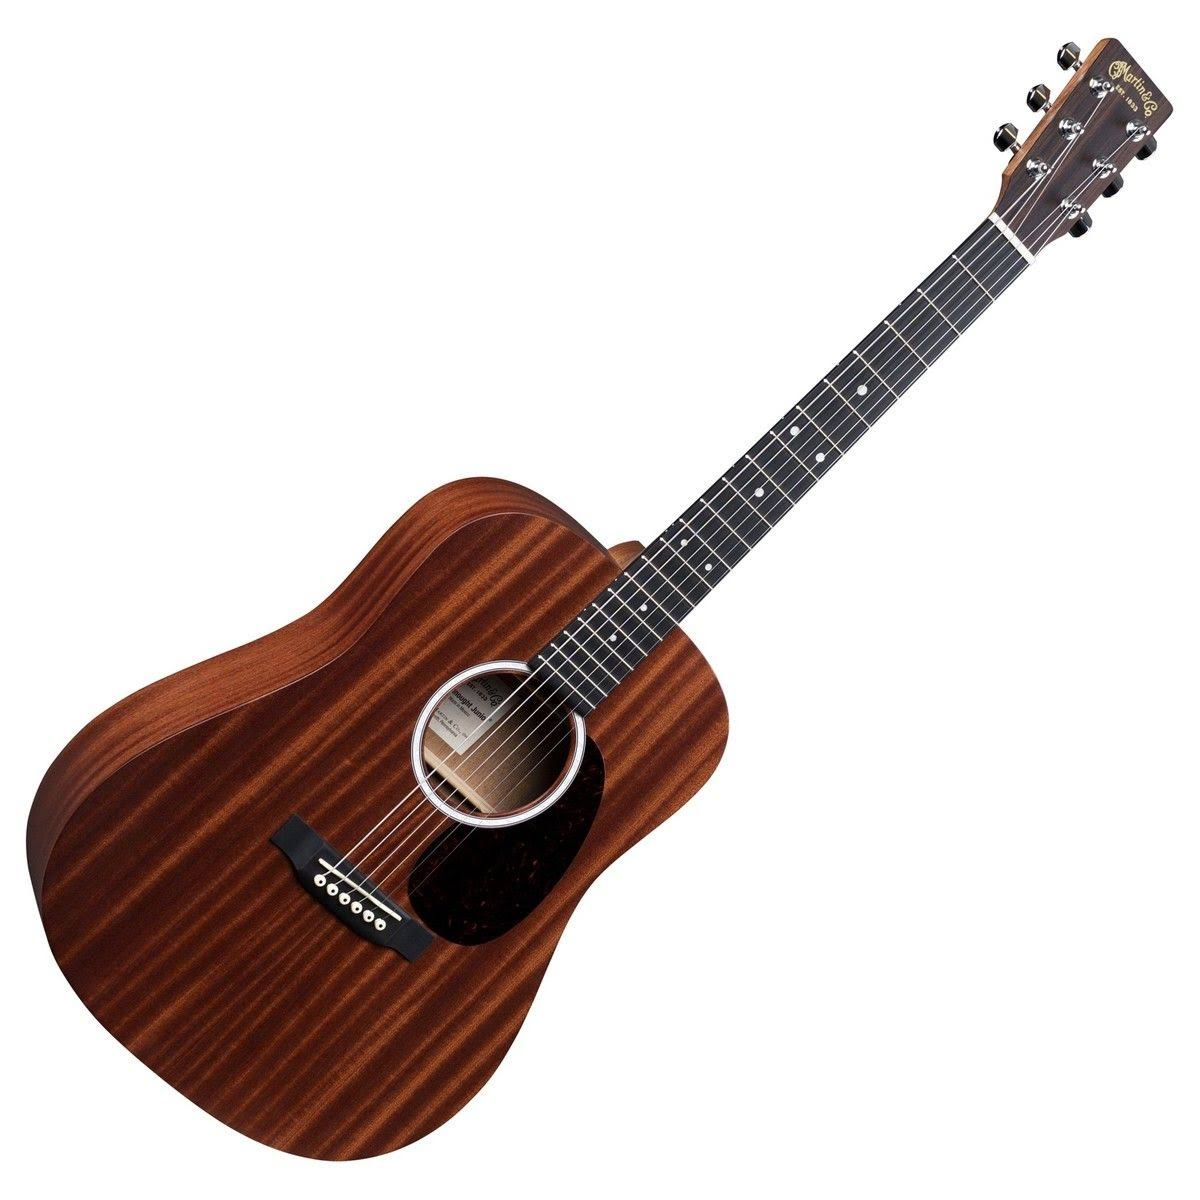 Martin DJR-10E Sapele Dreadnought Junior Natural